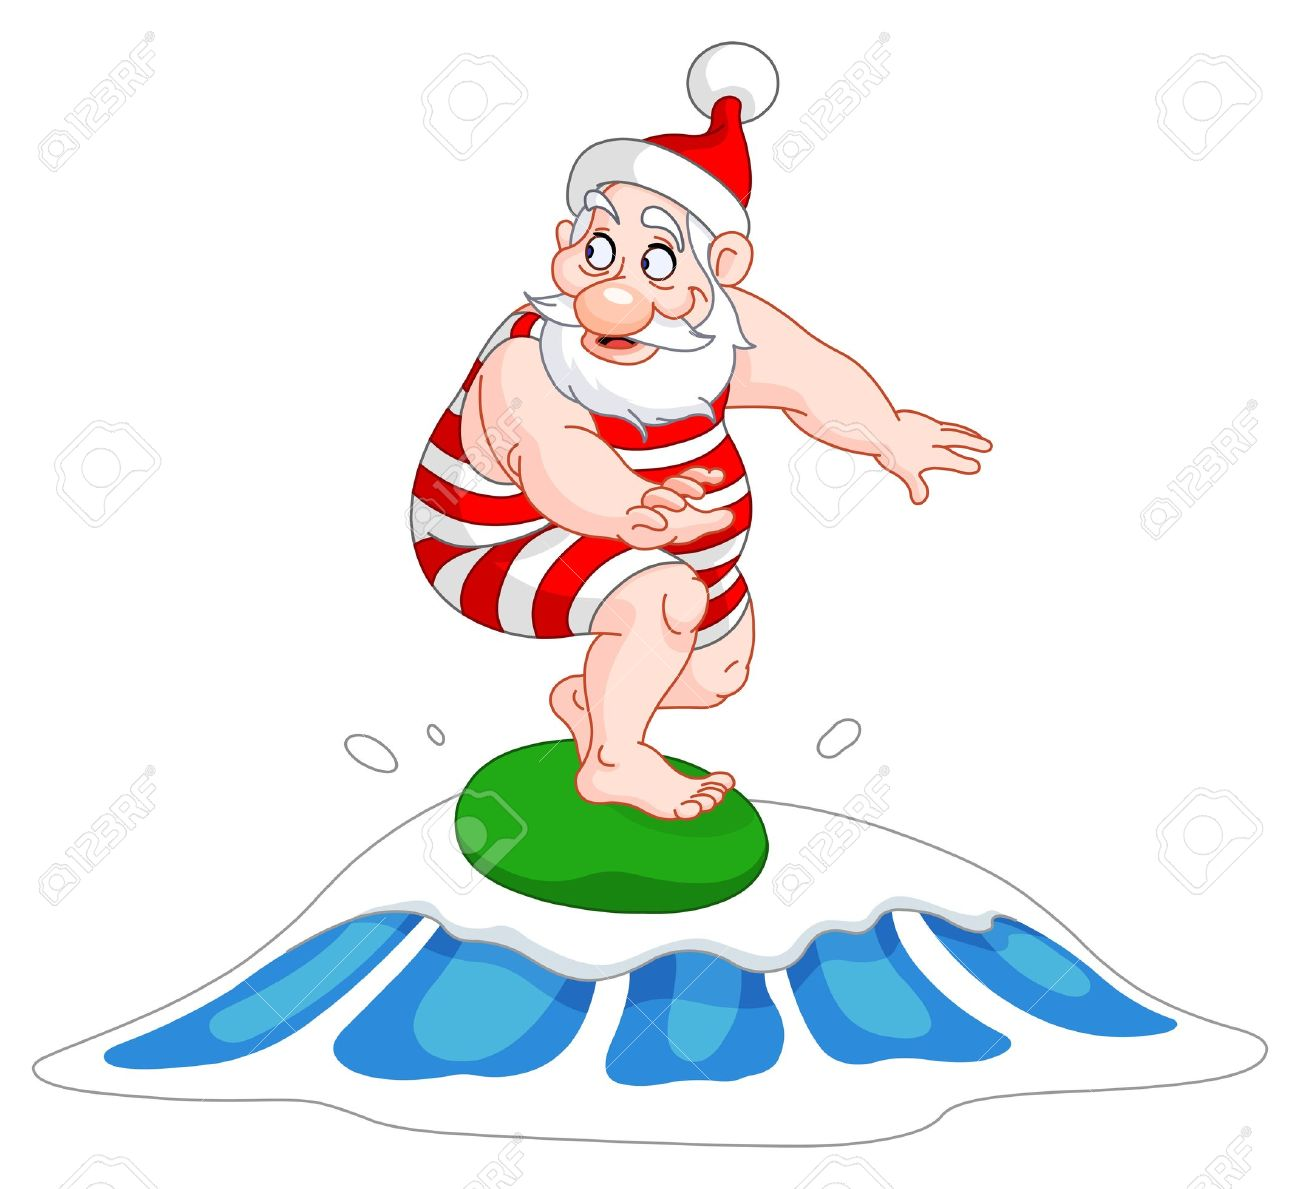 Santa surfboard clipart clip freeuse stock Santa Surfing Royalty Free Cliparts, Vectors, And Stock ... clip freeuse stock